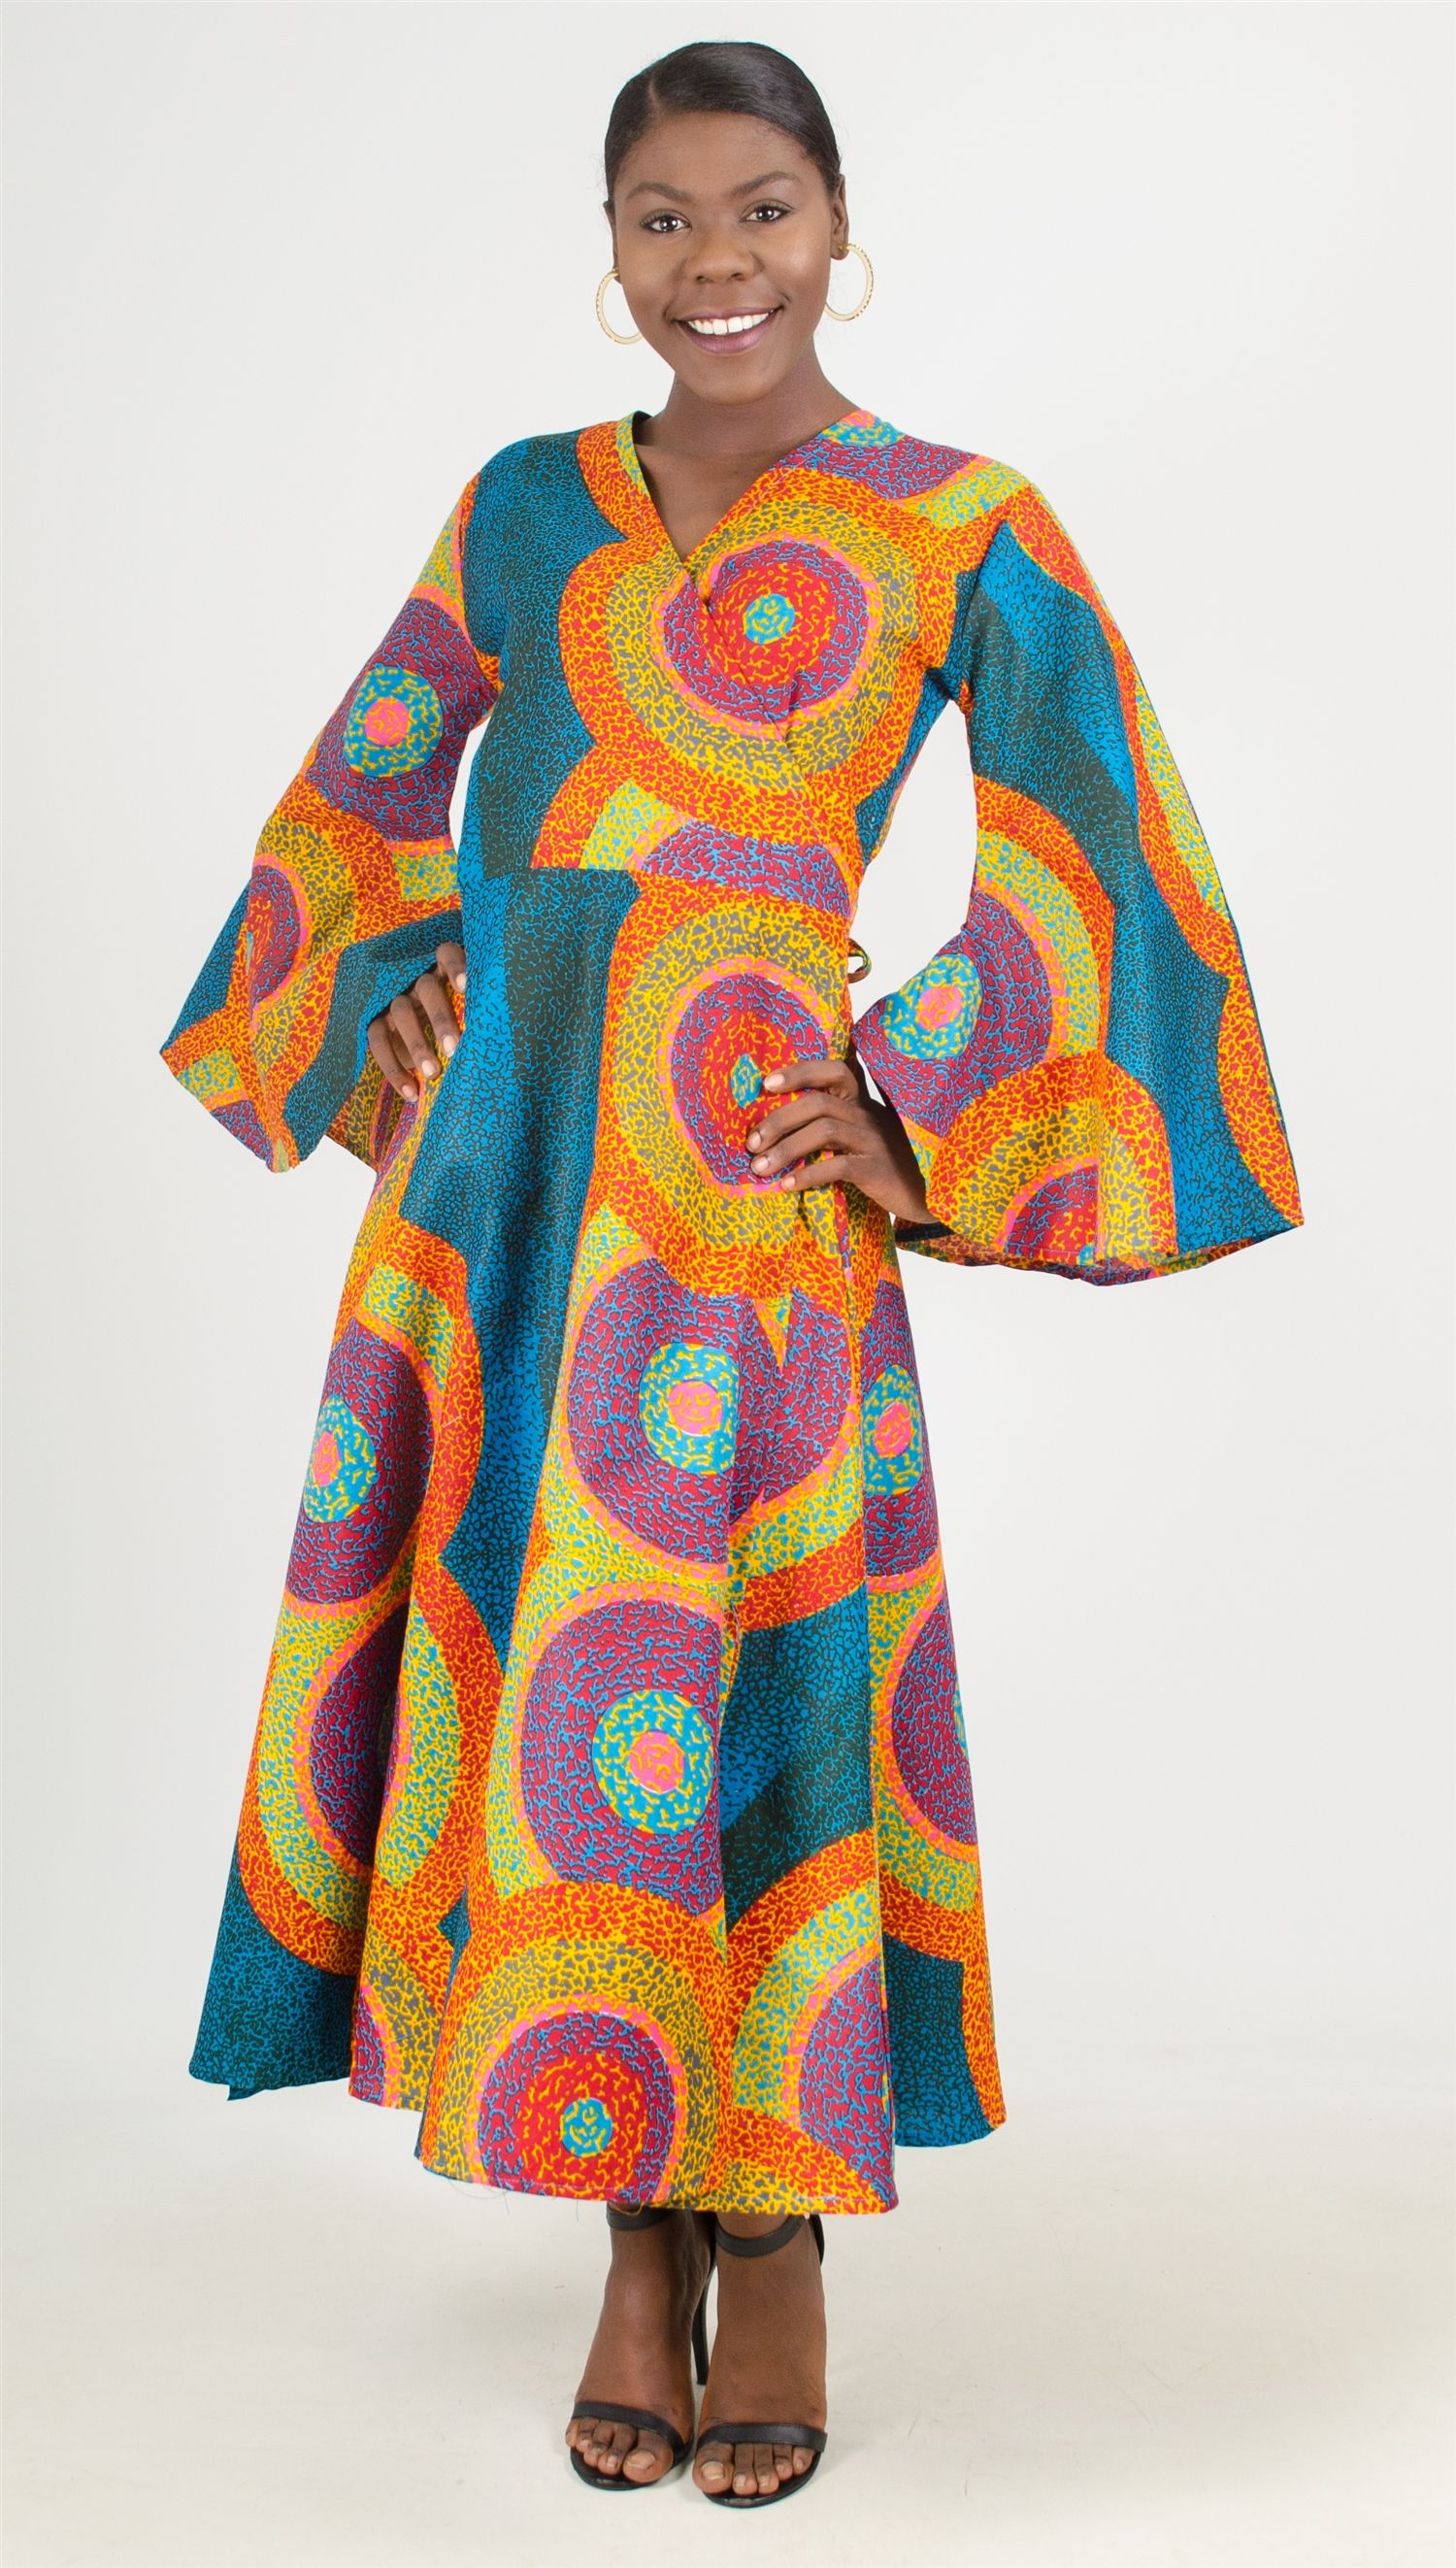 90a4f8d2347 African Fabric Print Wrap Dress w bell sleeves 100% cotton One size  85 FREE  Shipping (469)571-3647 or email DivasDenFashion gmail.com for an invoice